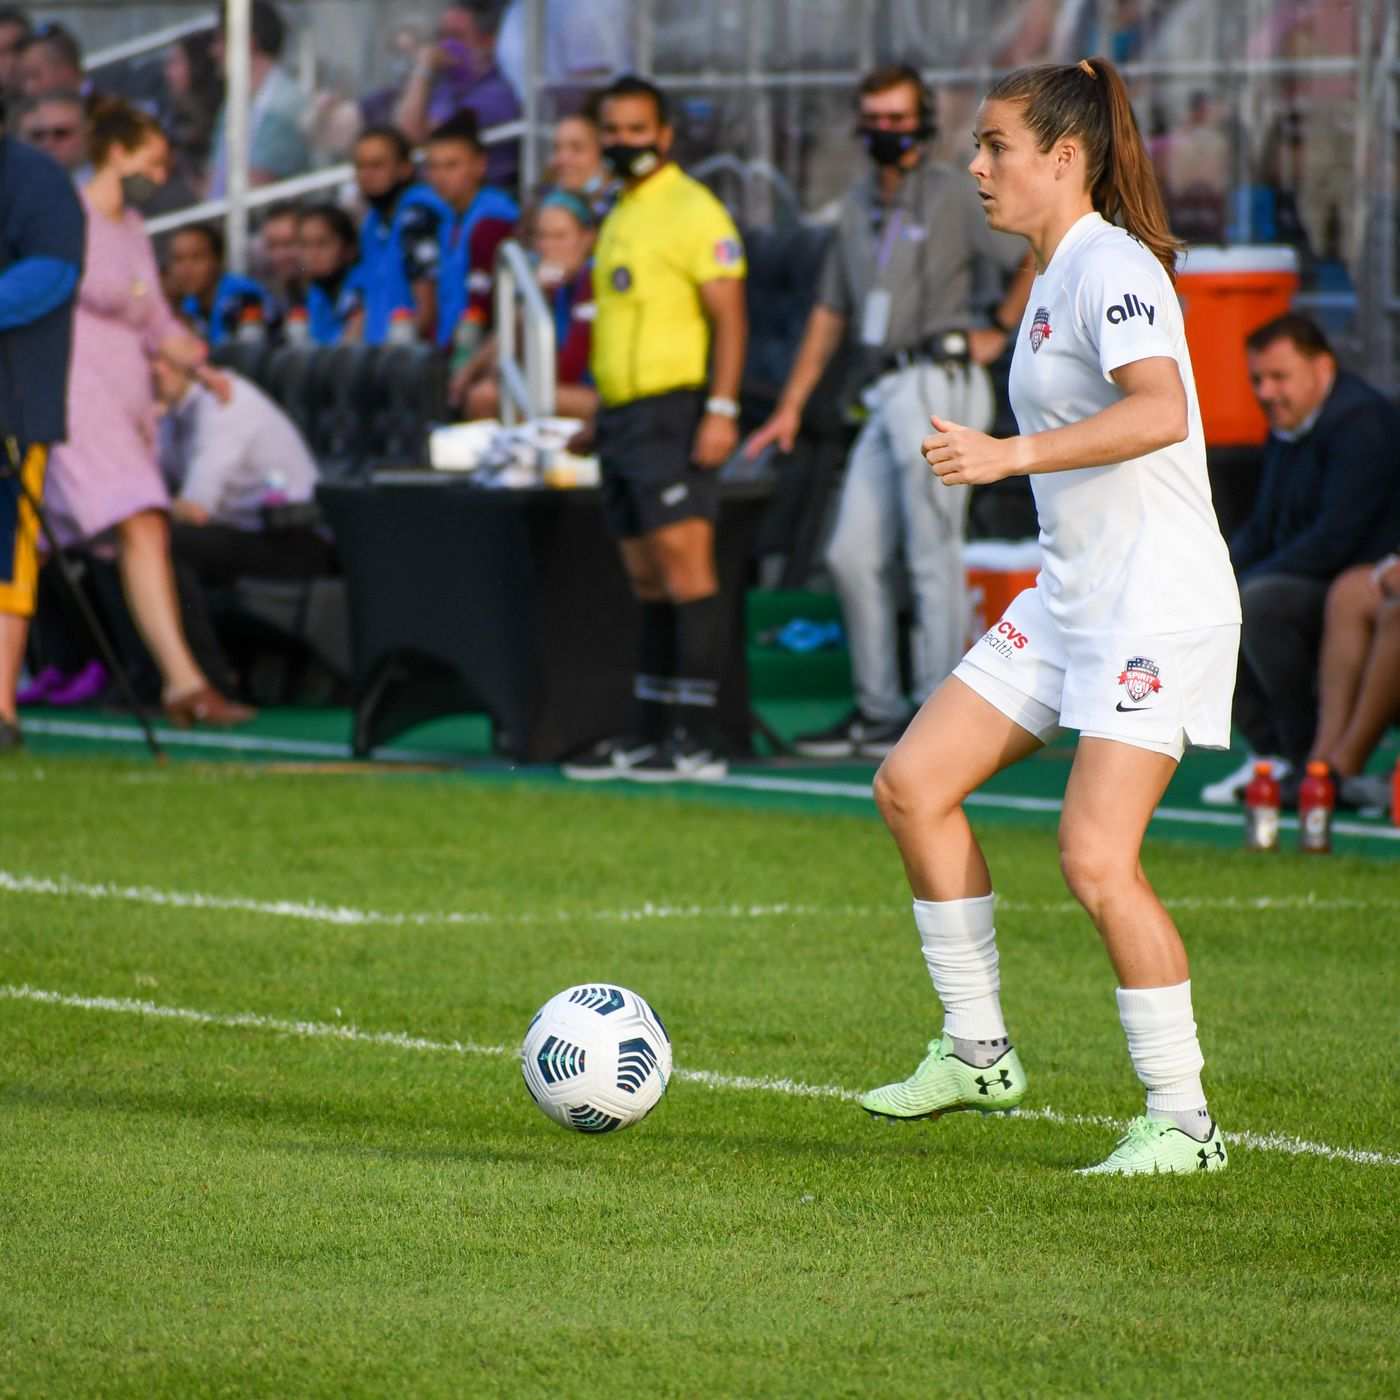 Ol Reign Vs Washington Spirit Time Tv Schedule And How To Watch Nwsl Online Black And Red United